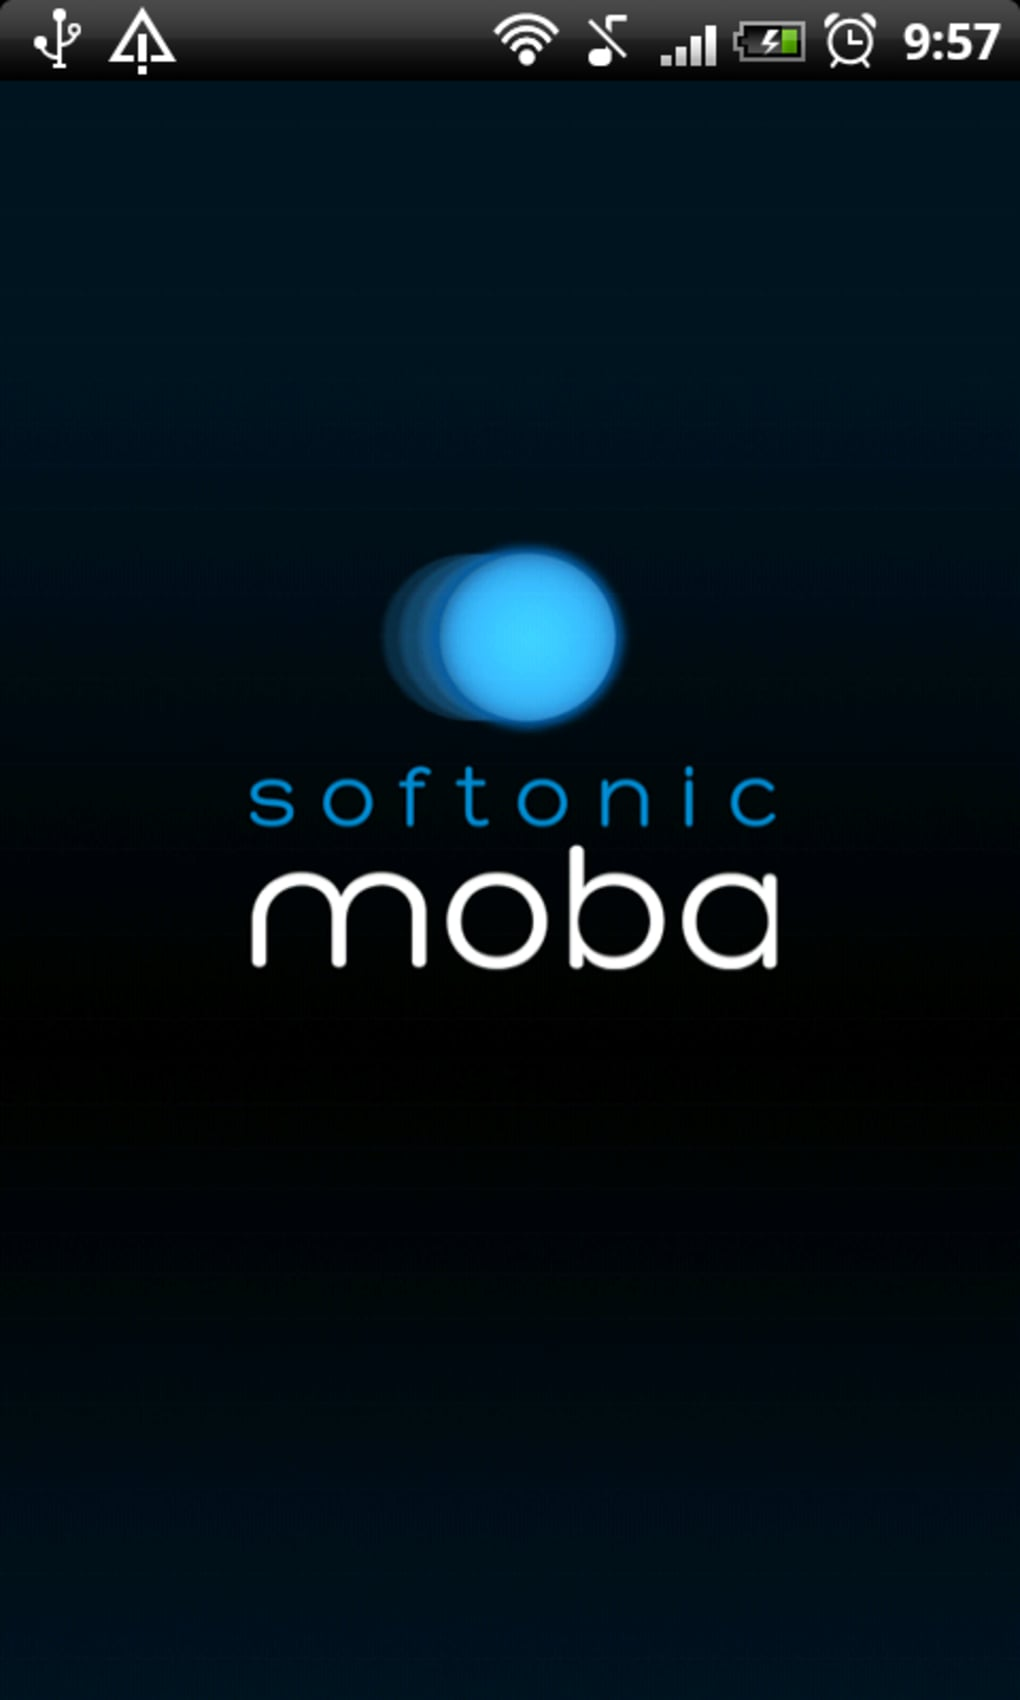 softonic moba iphone